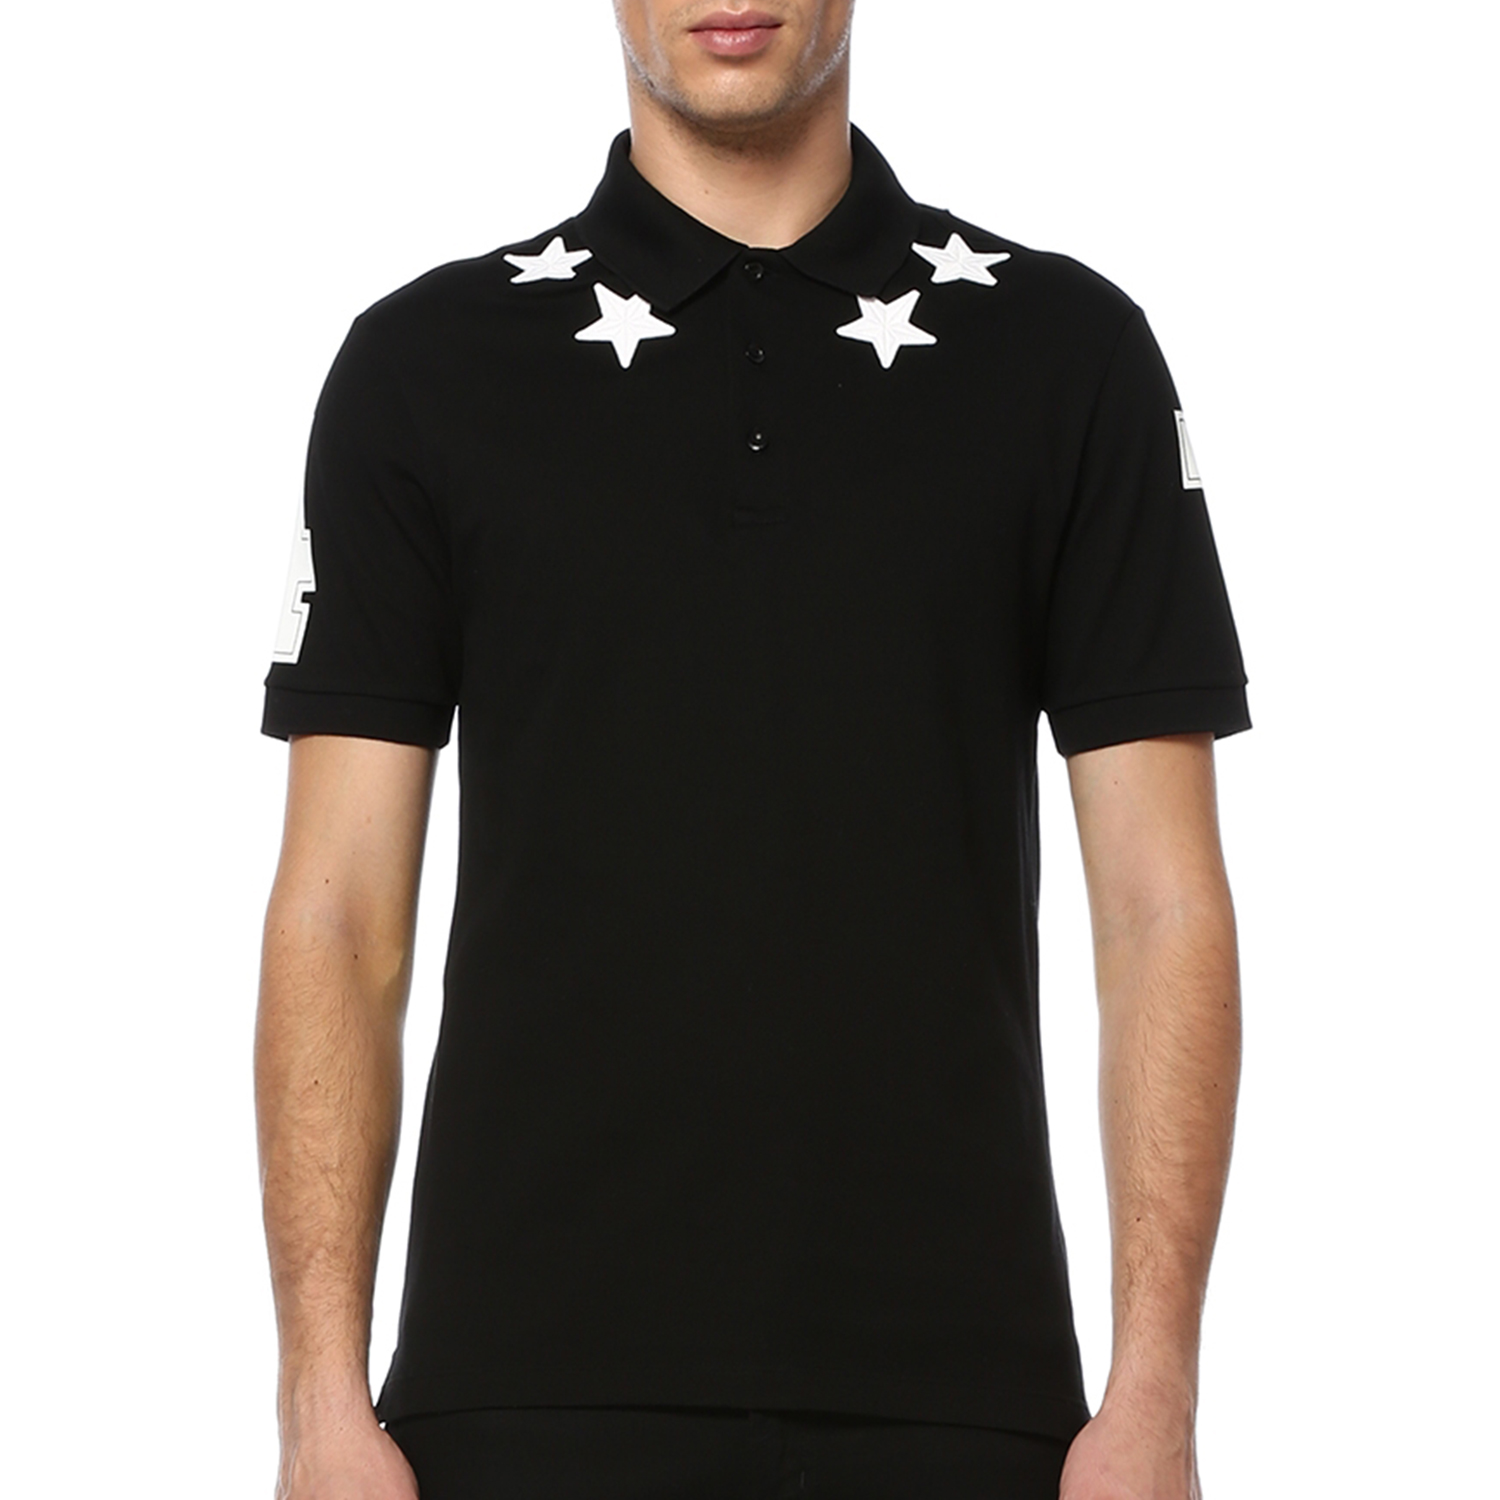 832f6f47 Givenchy Stars and 74 Details Polo // Black (M) - Kenzo, Givenchy ...